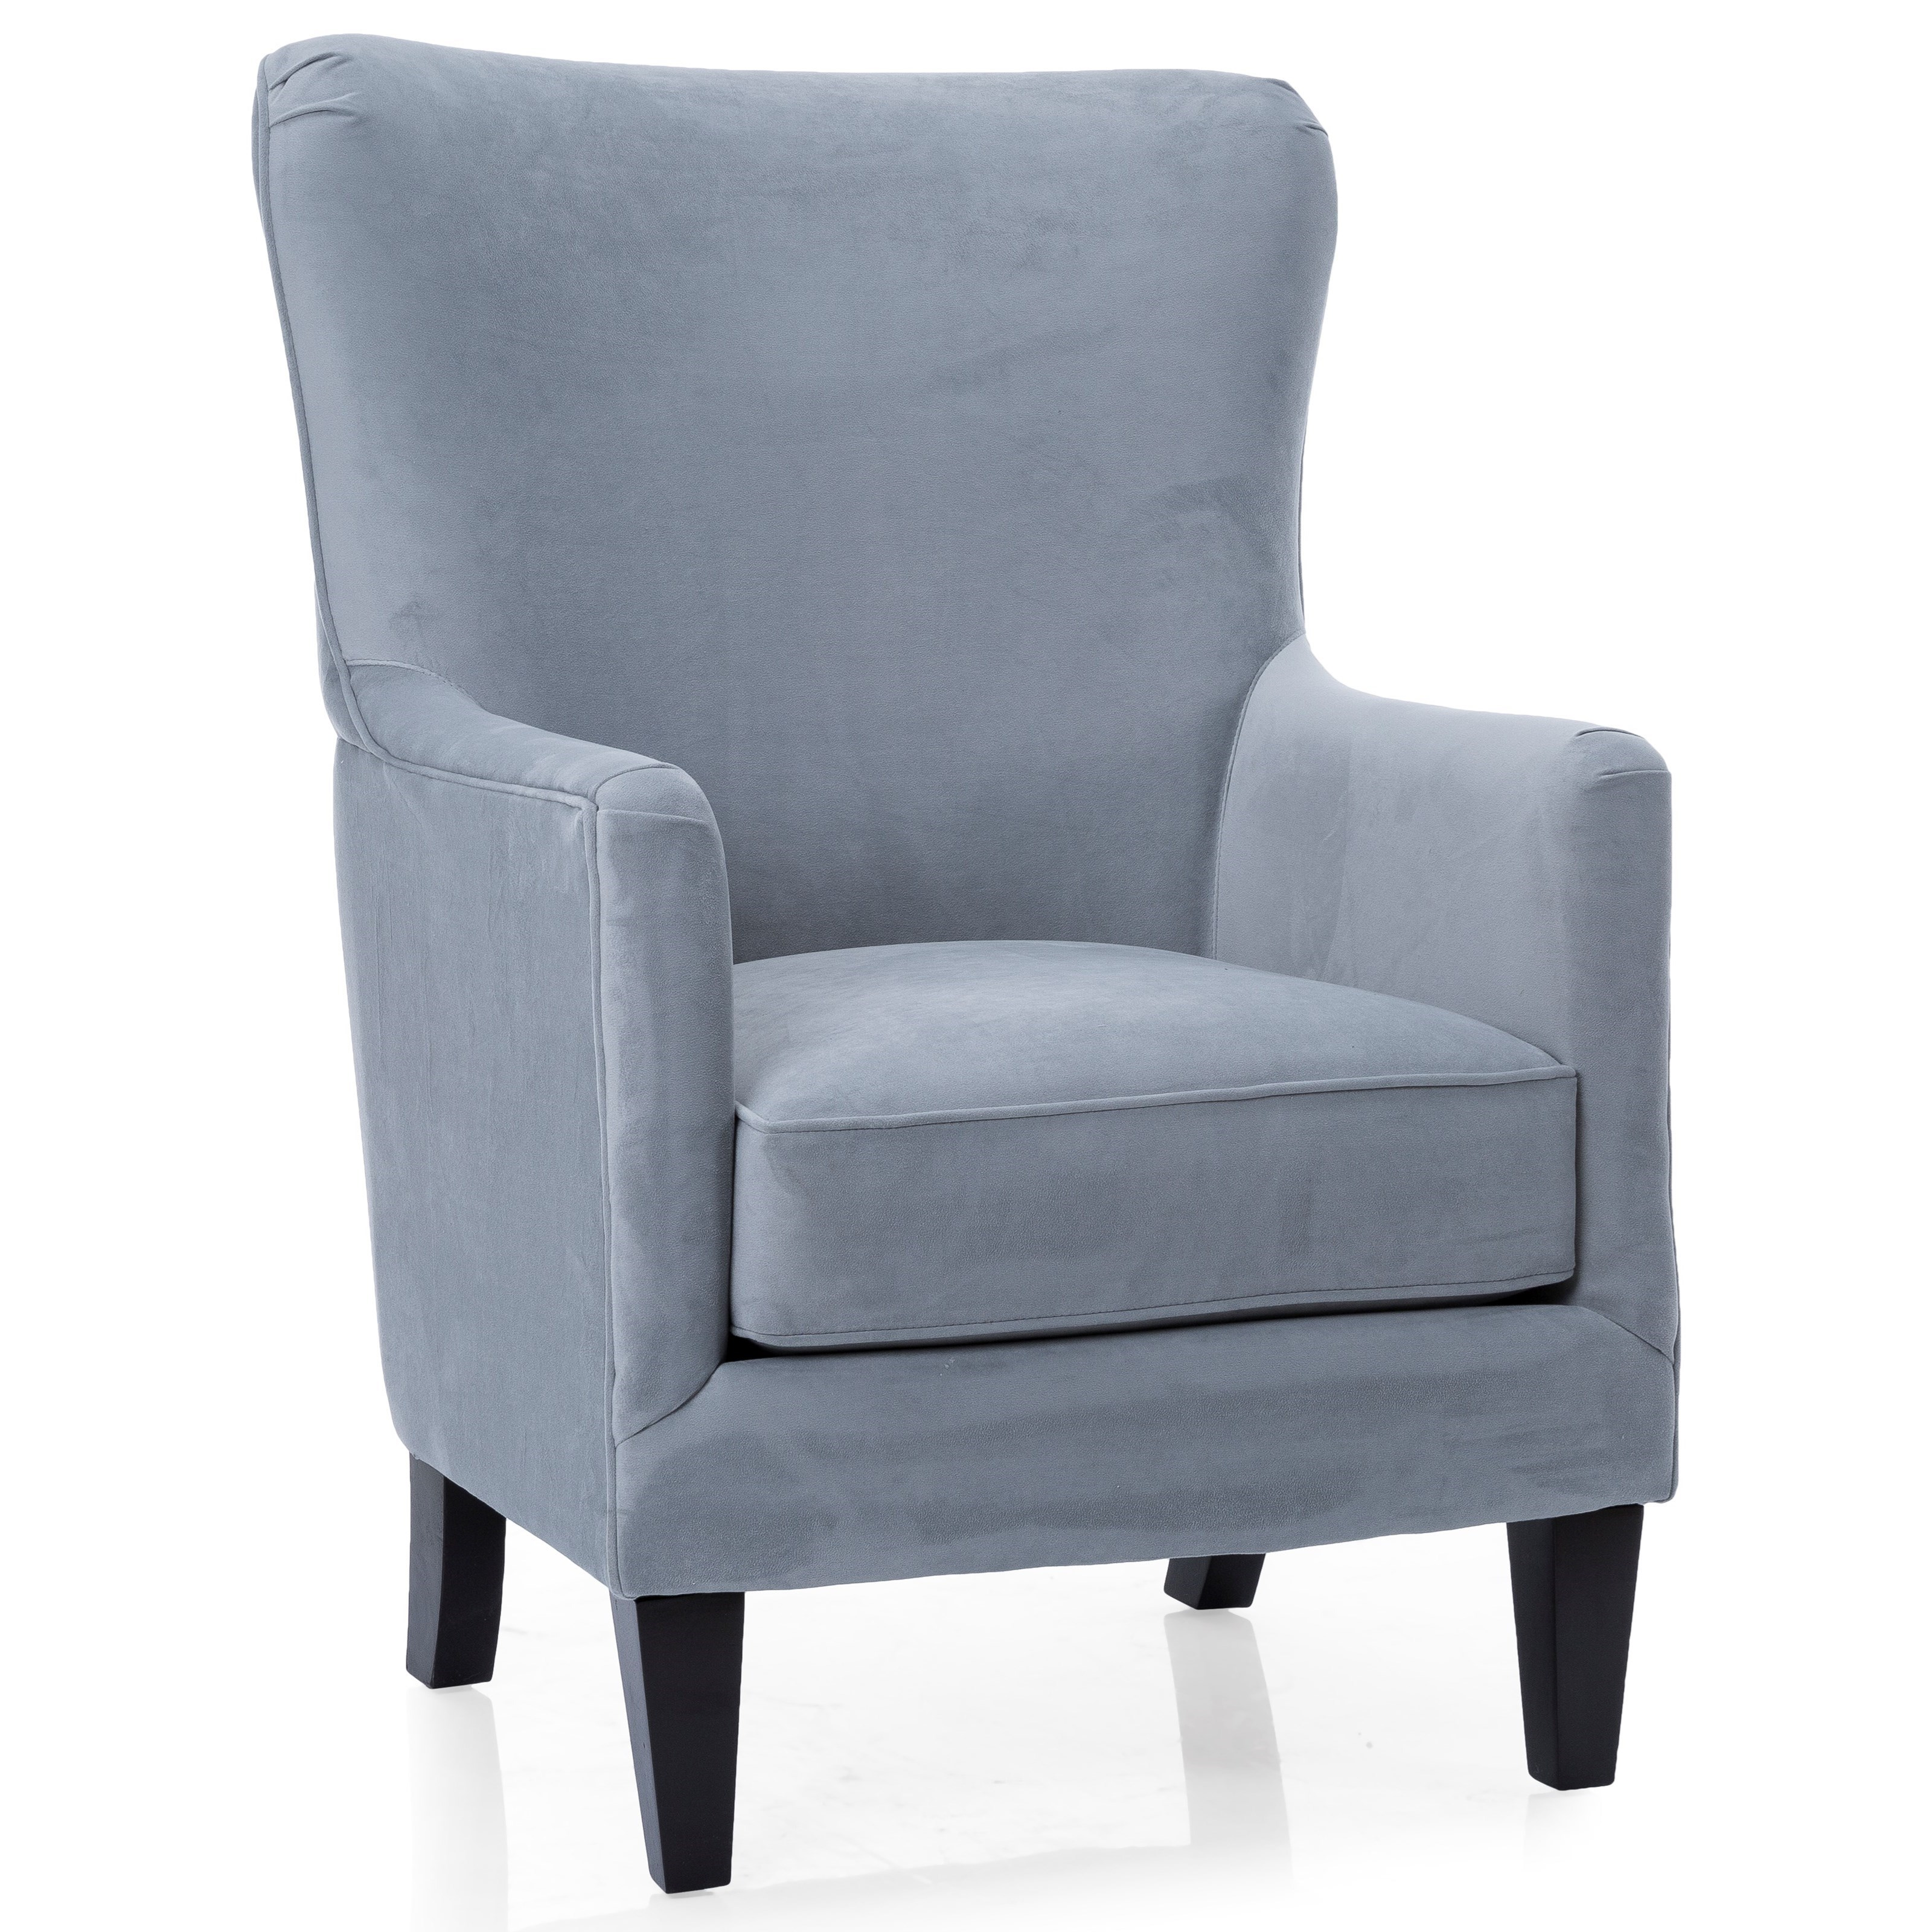 2379 Contemporary Wing Back Chair by Decor-Rest at Stoney Creek Furniture